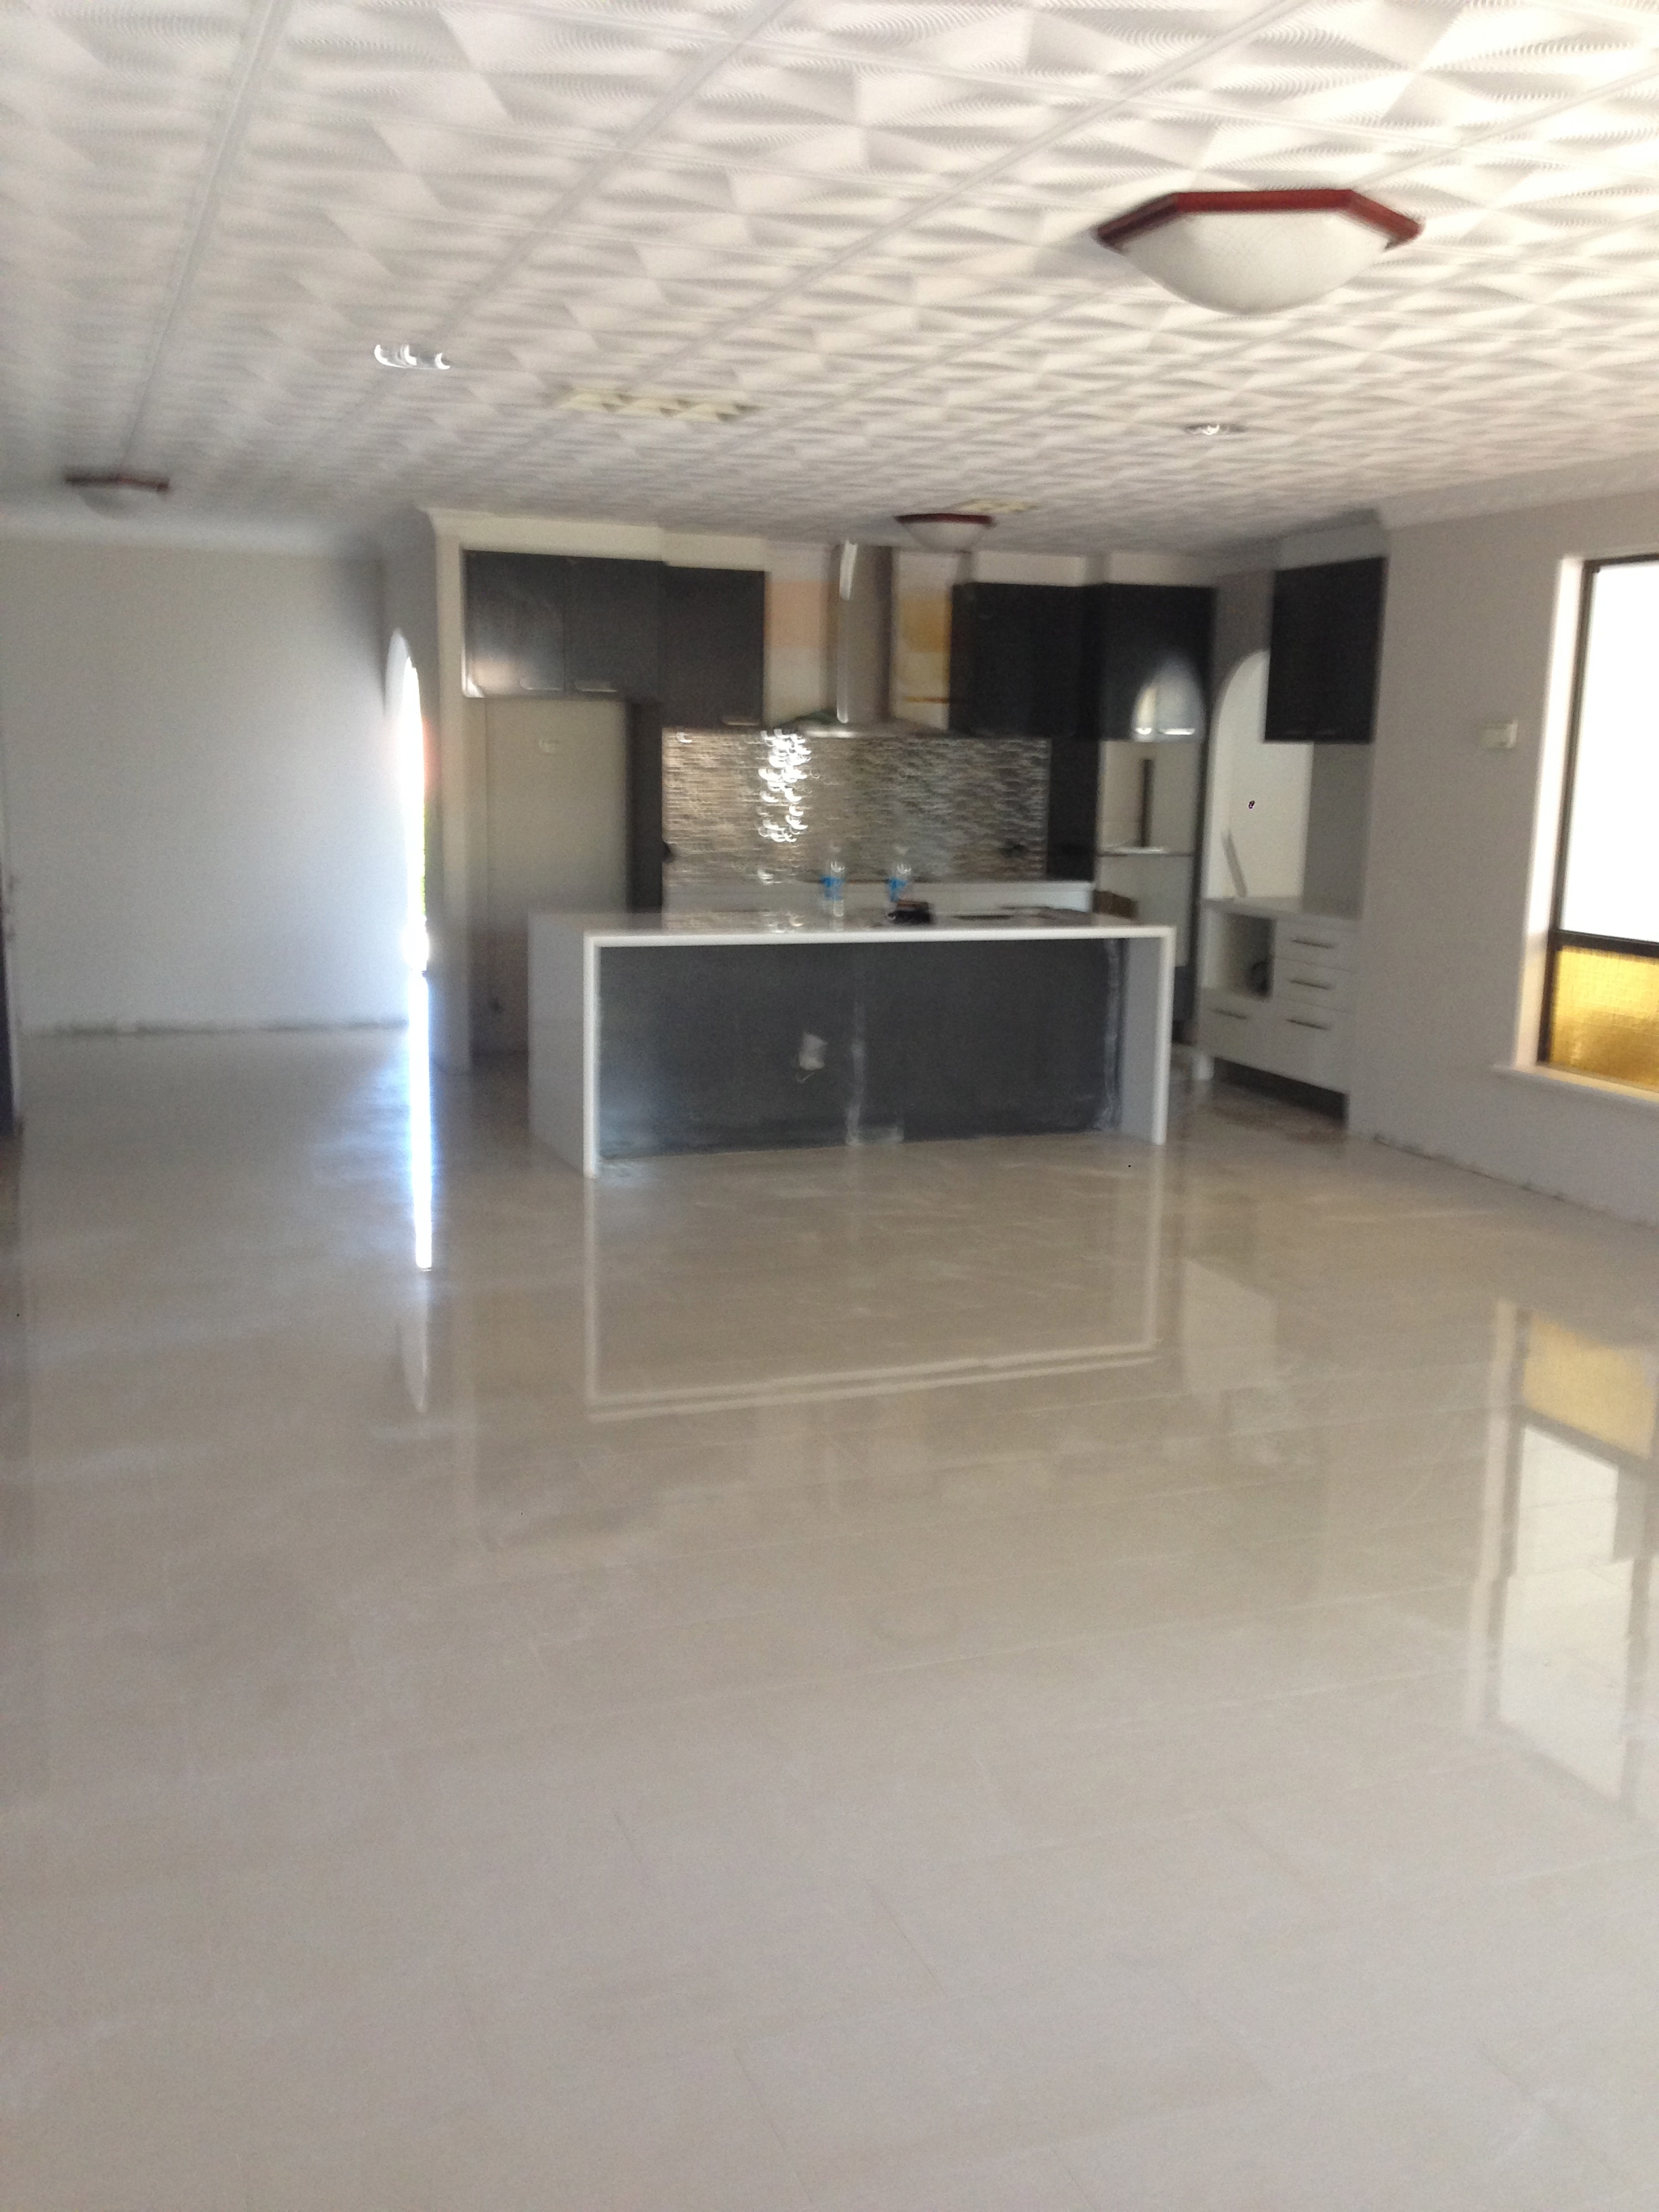 Tiling in perth perth tiling effective tiling solutions floor tiling perth floor tiling perth dailygadgetfo Choice Image